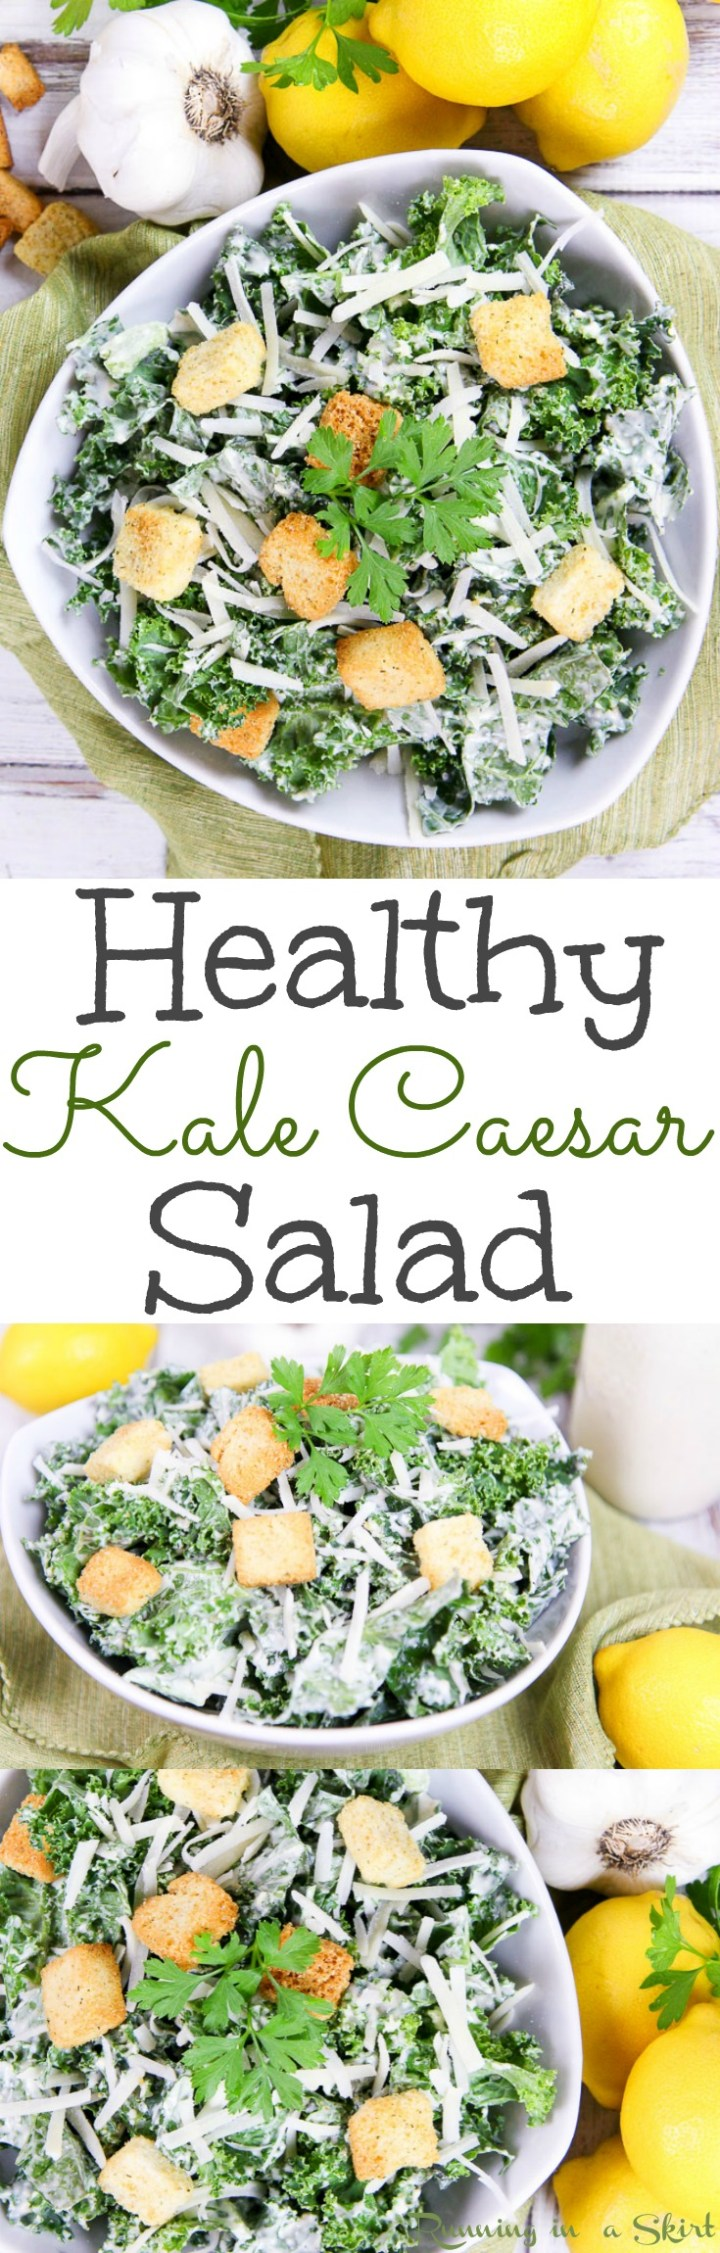 The Best Healthy Caesar Salad recipe with kale and homemade greek yogurt caesar dressing! A clean eating, easy idea for lunches, meals or dinners. Topped with parmesan and whole wheat croutons! / Running in a Skirt via @juliewunder